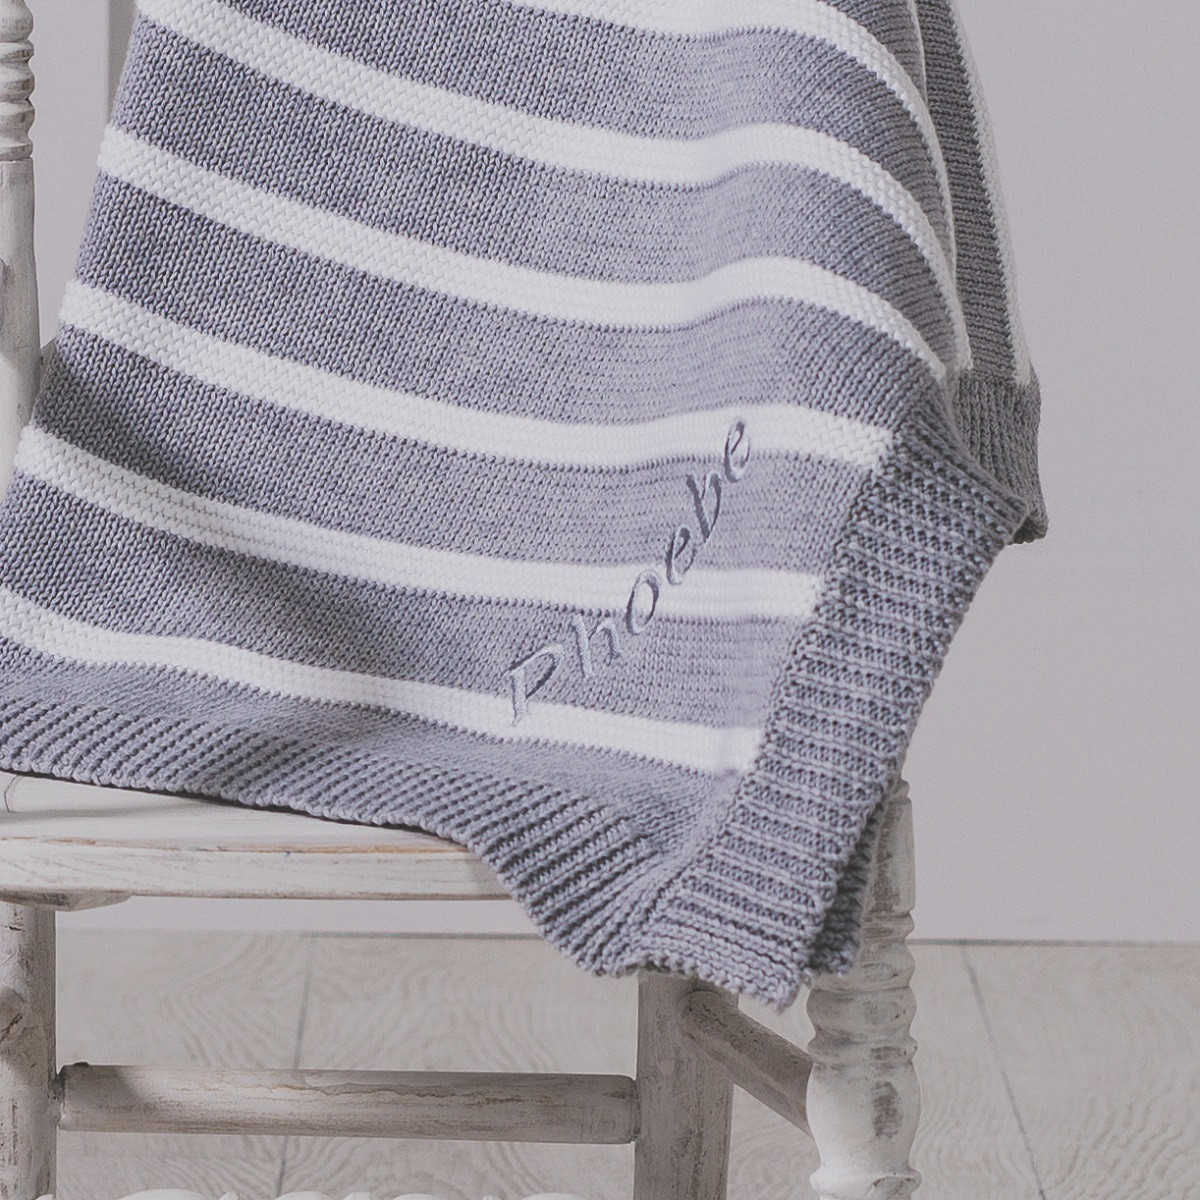 Beautiful Zippy Personalised Grey and White Stripe Cotton Knitted Cotton Knit Baby Blanket Of Awesome 41 Models Cotton Knit Baby Blanket